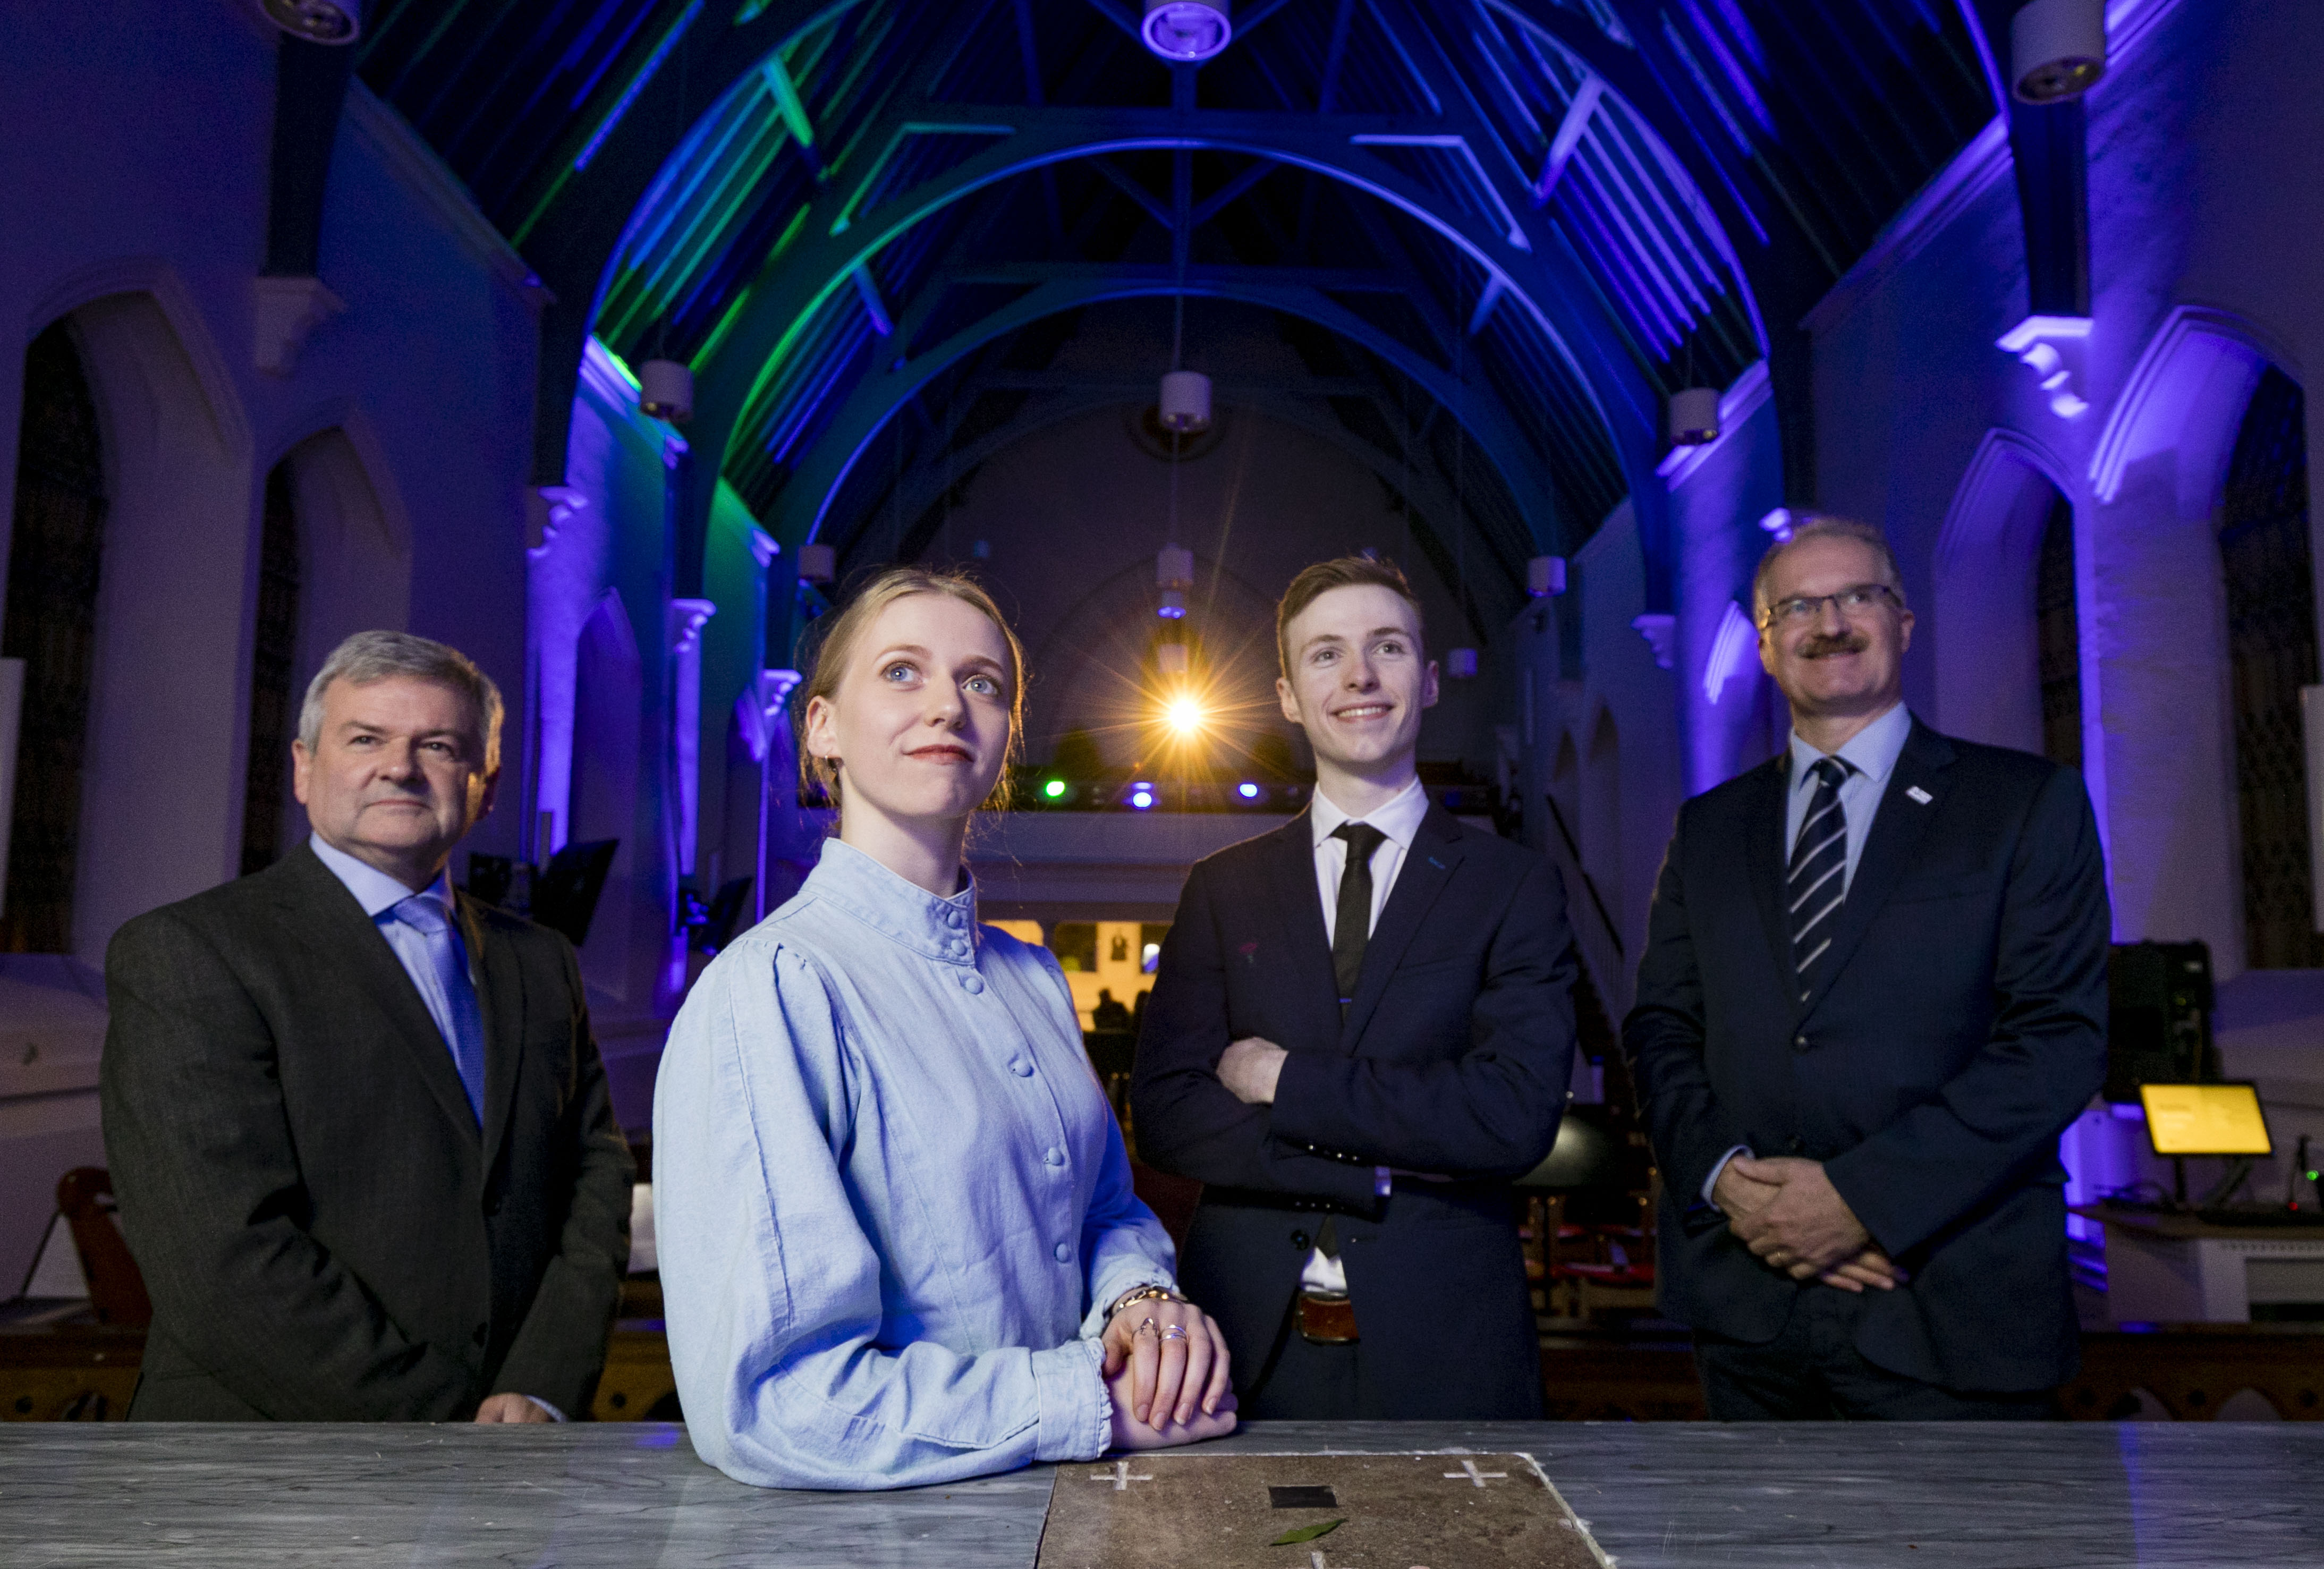 Three men and one woman are smiling and standing in a room in TU Dublin.